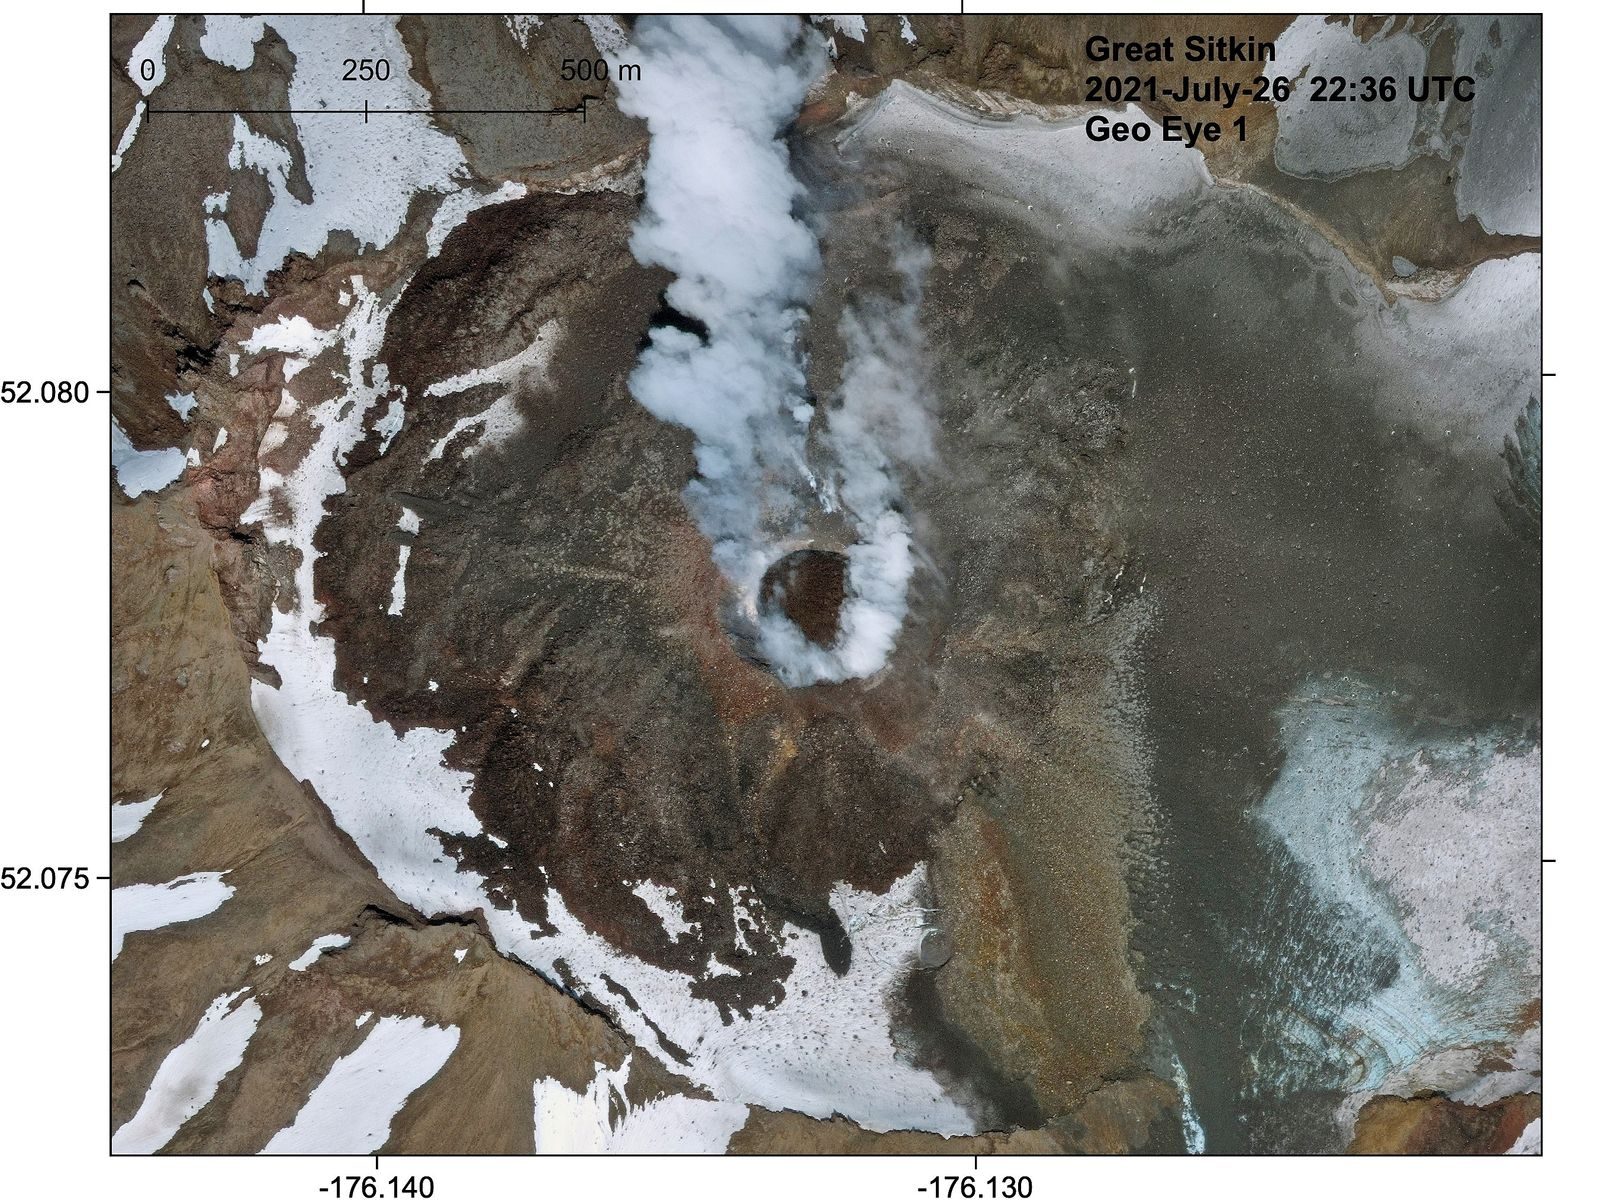 Great Sitkin - the crater with his dome and the steam plume 07.26.2021 / 10:36 PM UTC - Doc. AVO - DigitalGlobe via NextView license / Matt Loewen